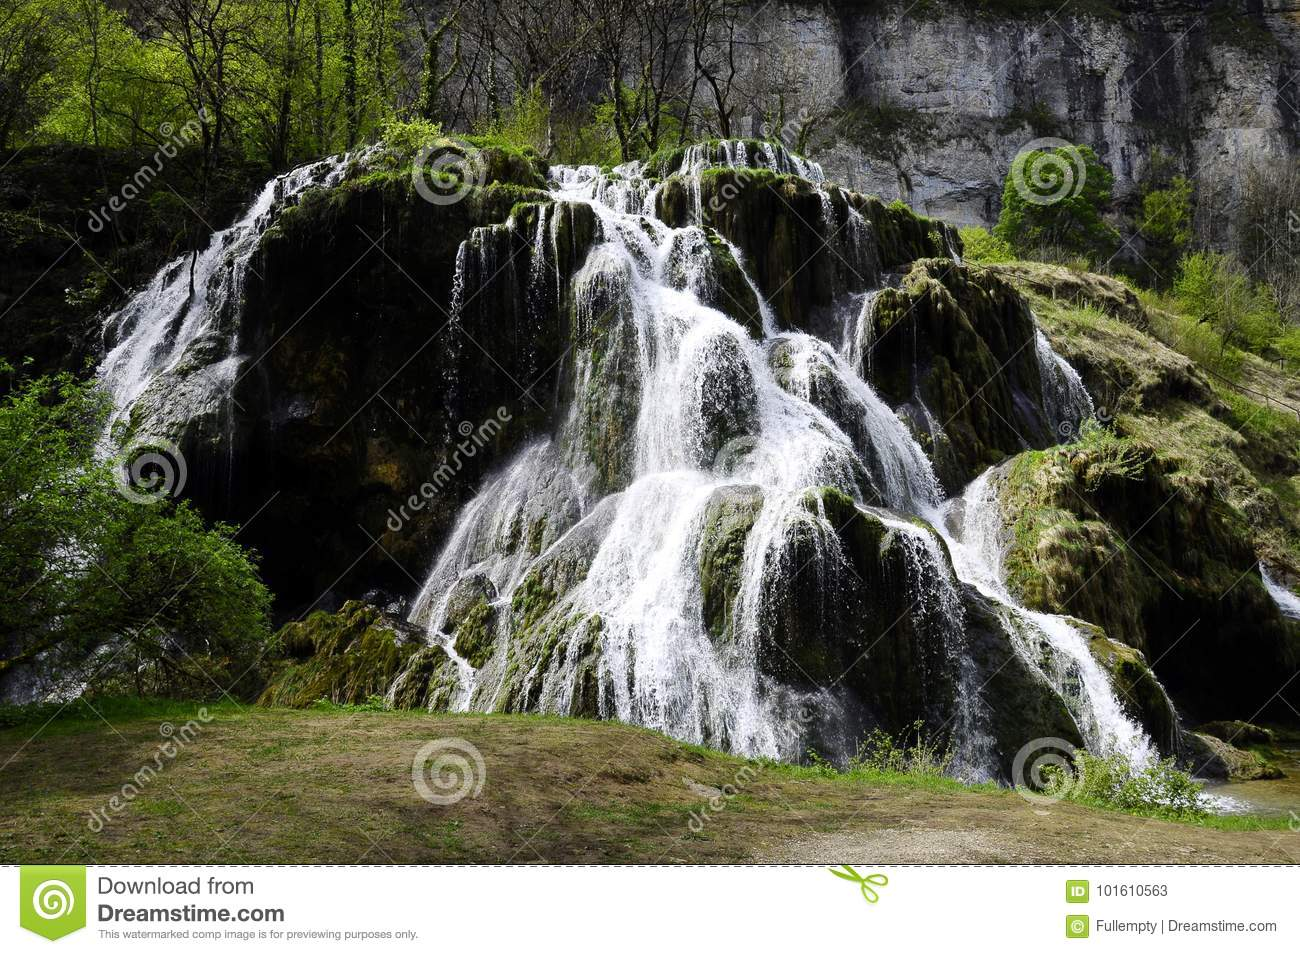 Waterfall and basins of Baume les messieurs in France